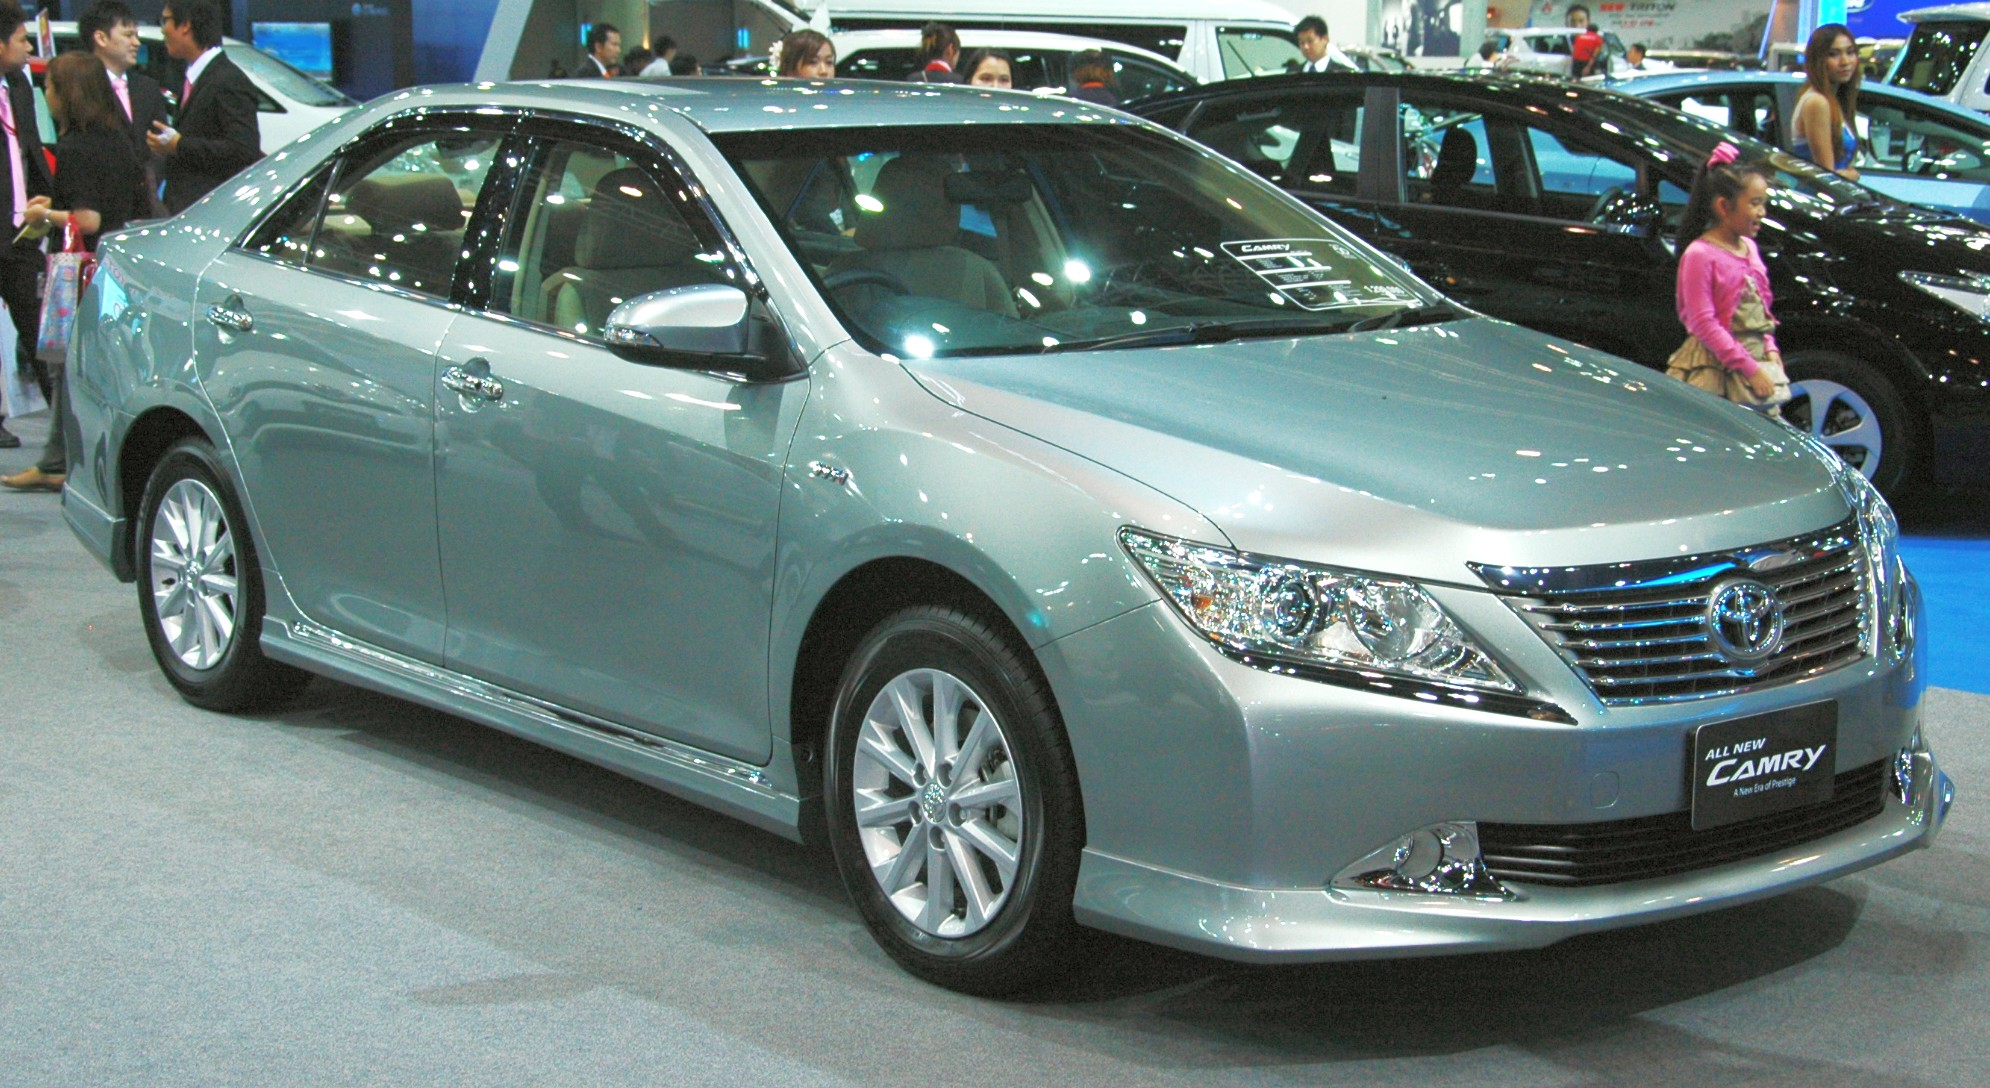 Toyota Camry Brochure Leaked And Pix Of Thai Market